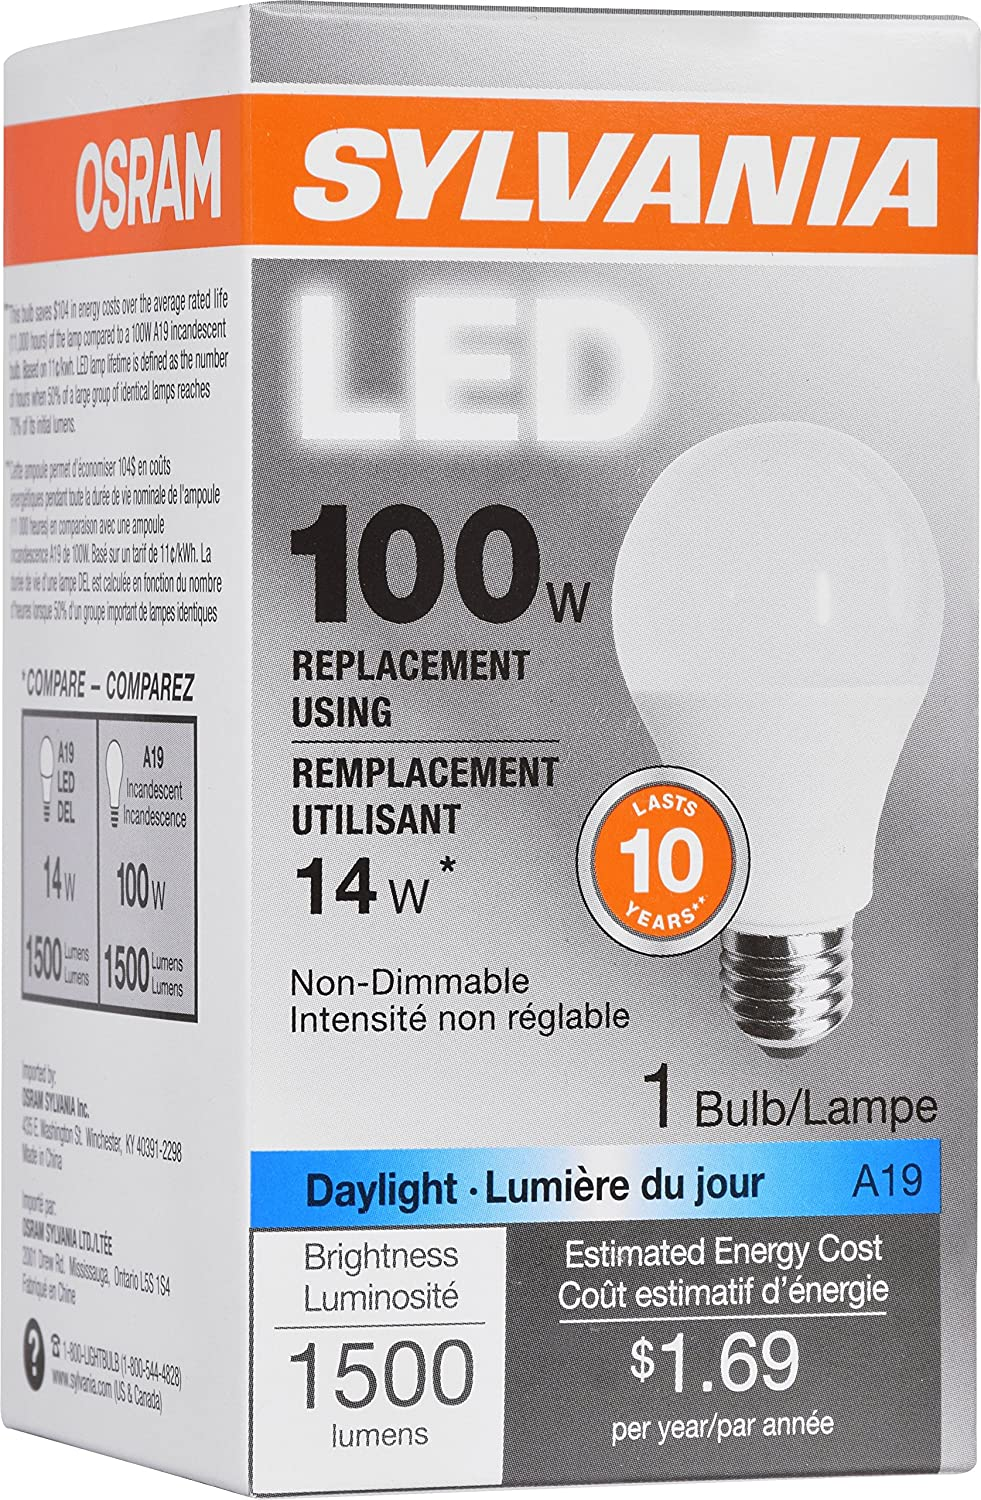 Sylvania General Lighting 79294 Sylvania Non Dimmable Led Light Bulb 14 W 120 V 1500 Lumens 5000 K Cri 80 2 3 8 In Dia X 4 29 In L Replacement For 100 Watt Daylight Amazon Com